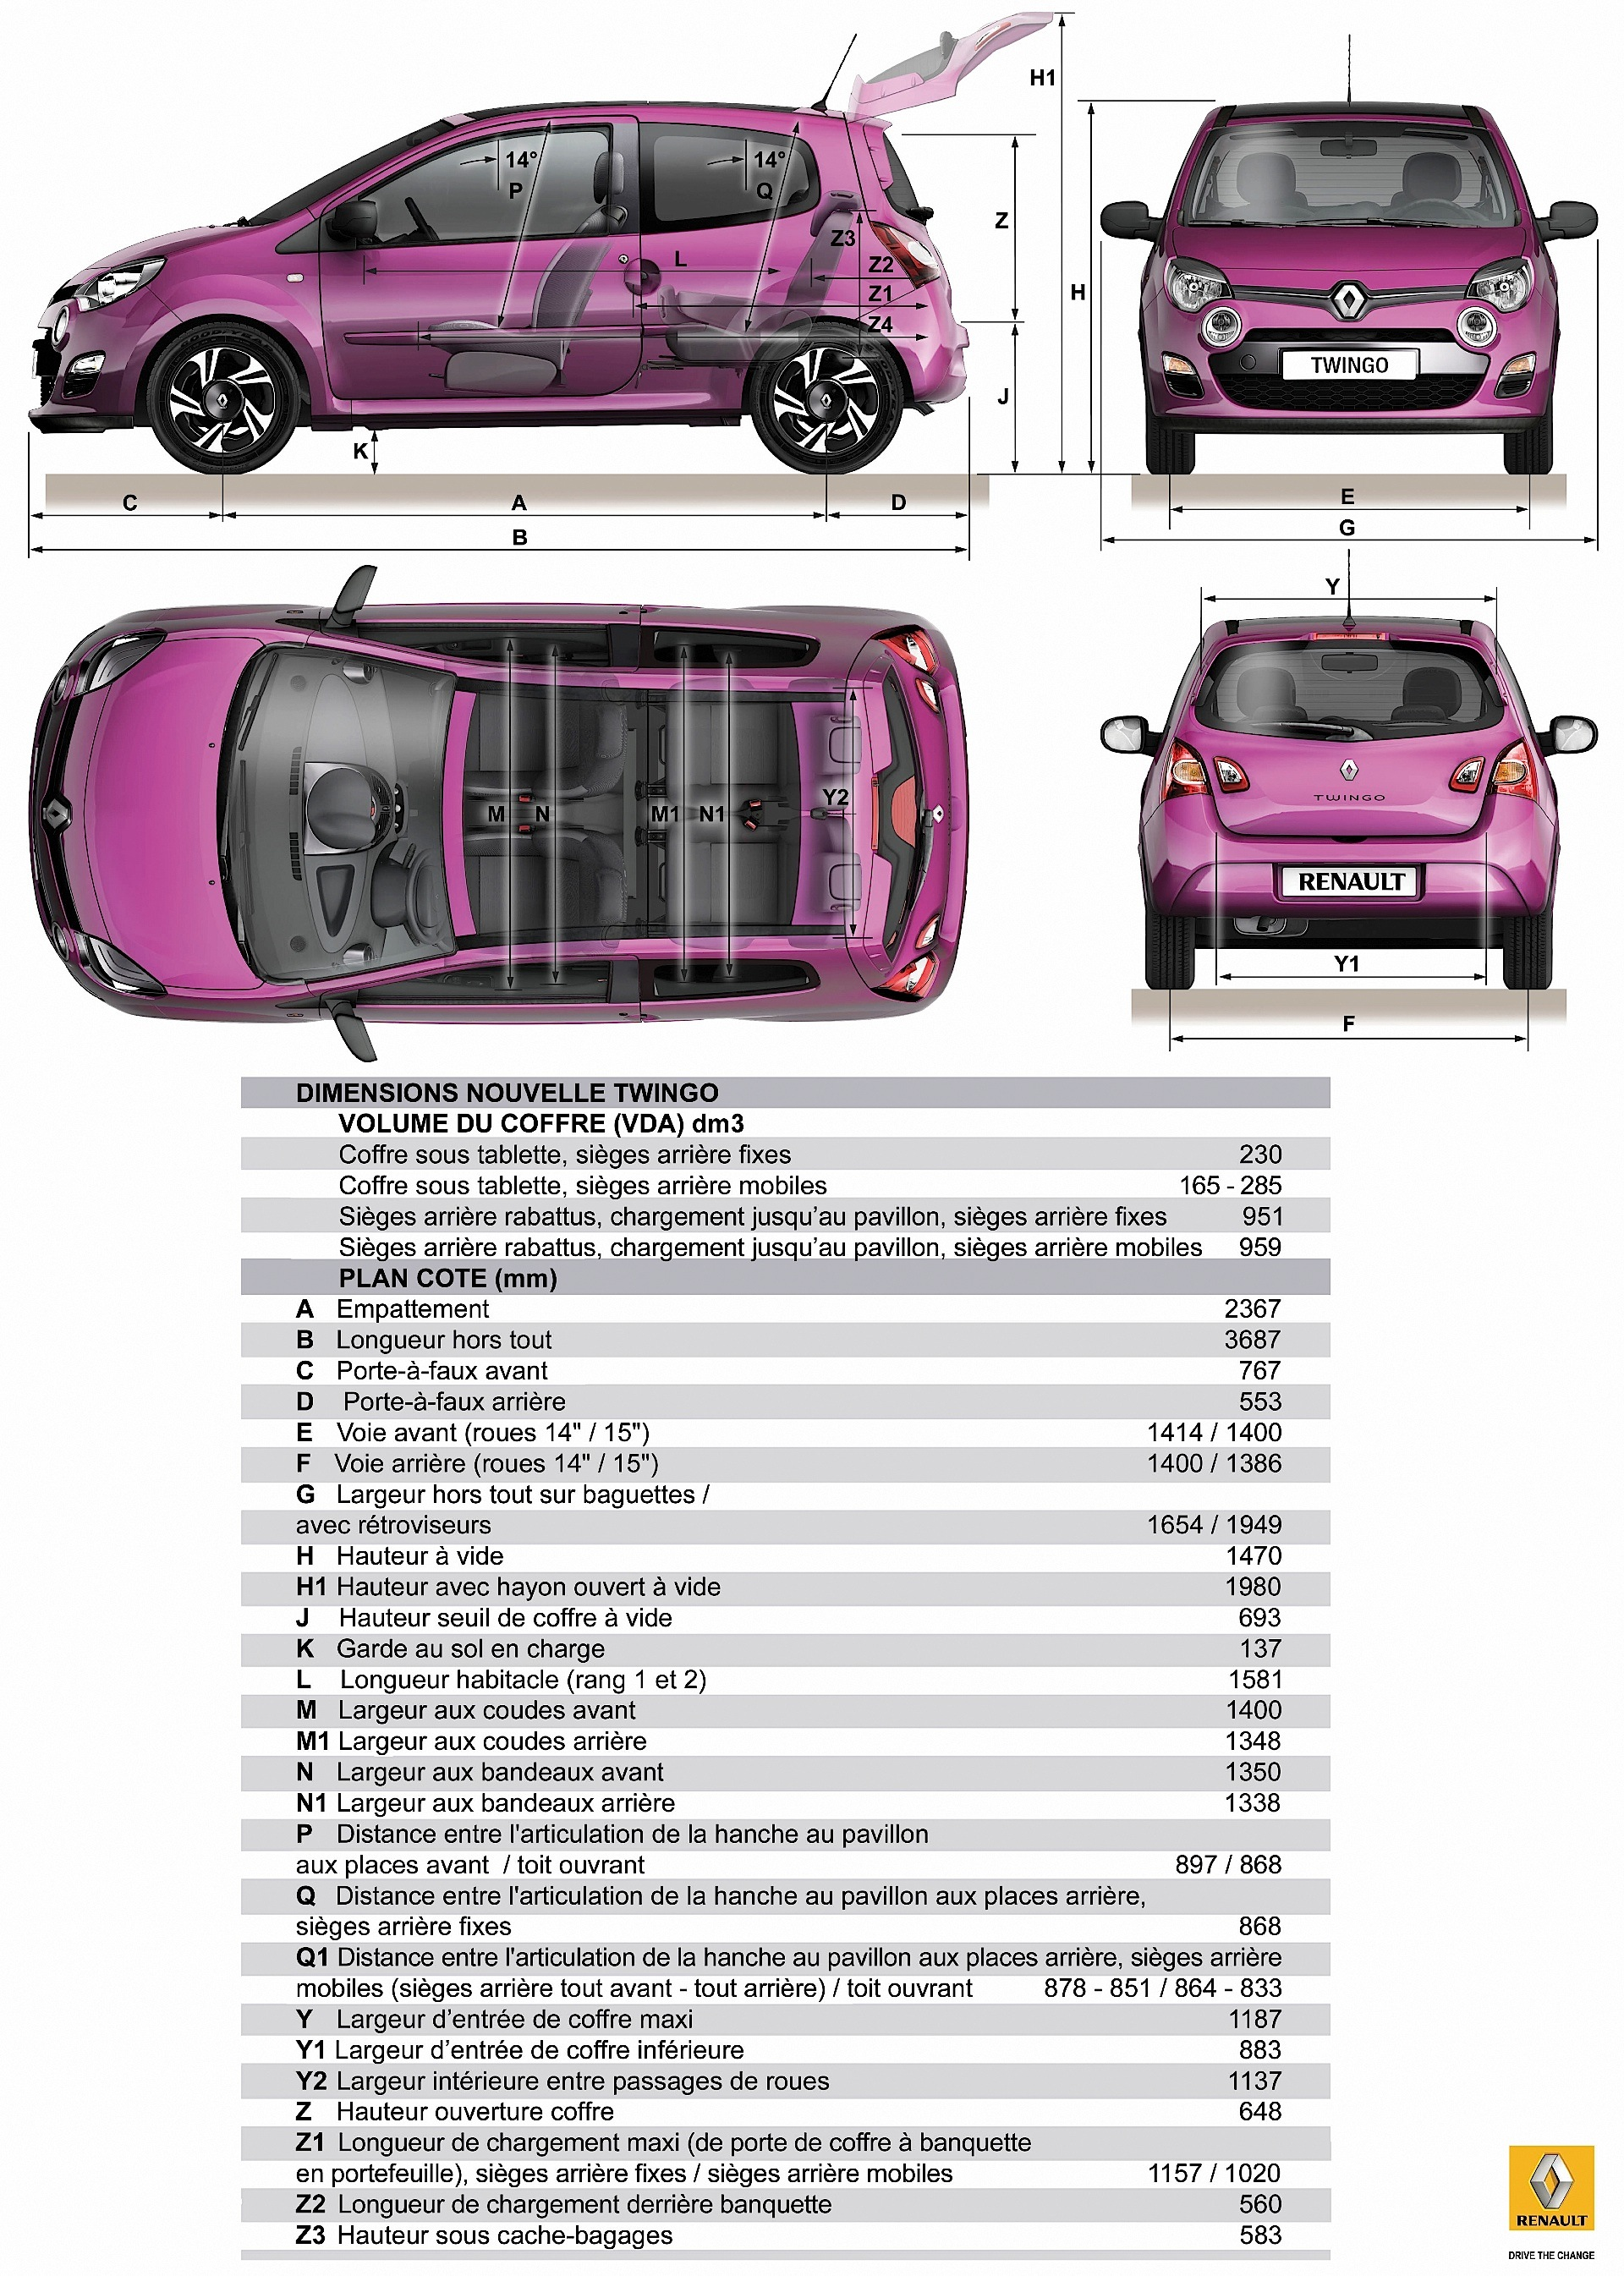 renault twingo specs photos 2011 2012 2013 2014. Black Bedroom Furniture Sets. Home Design Ideas